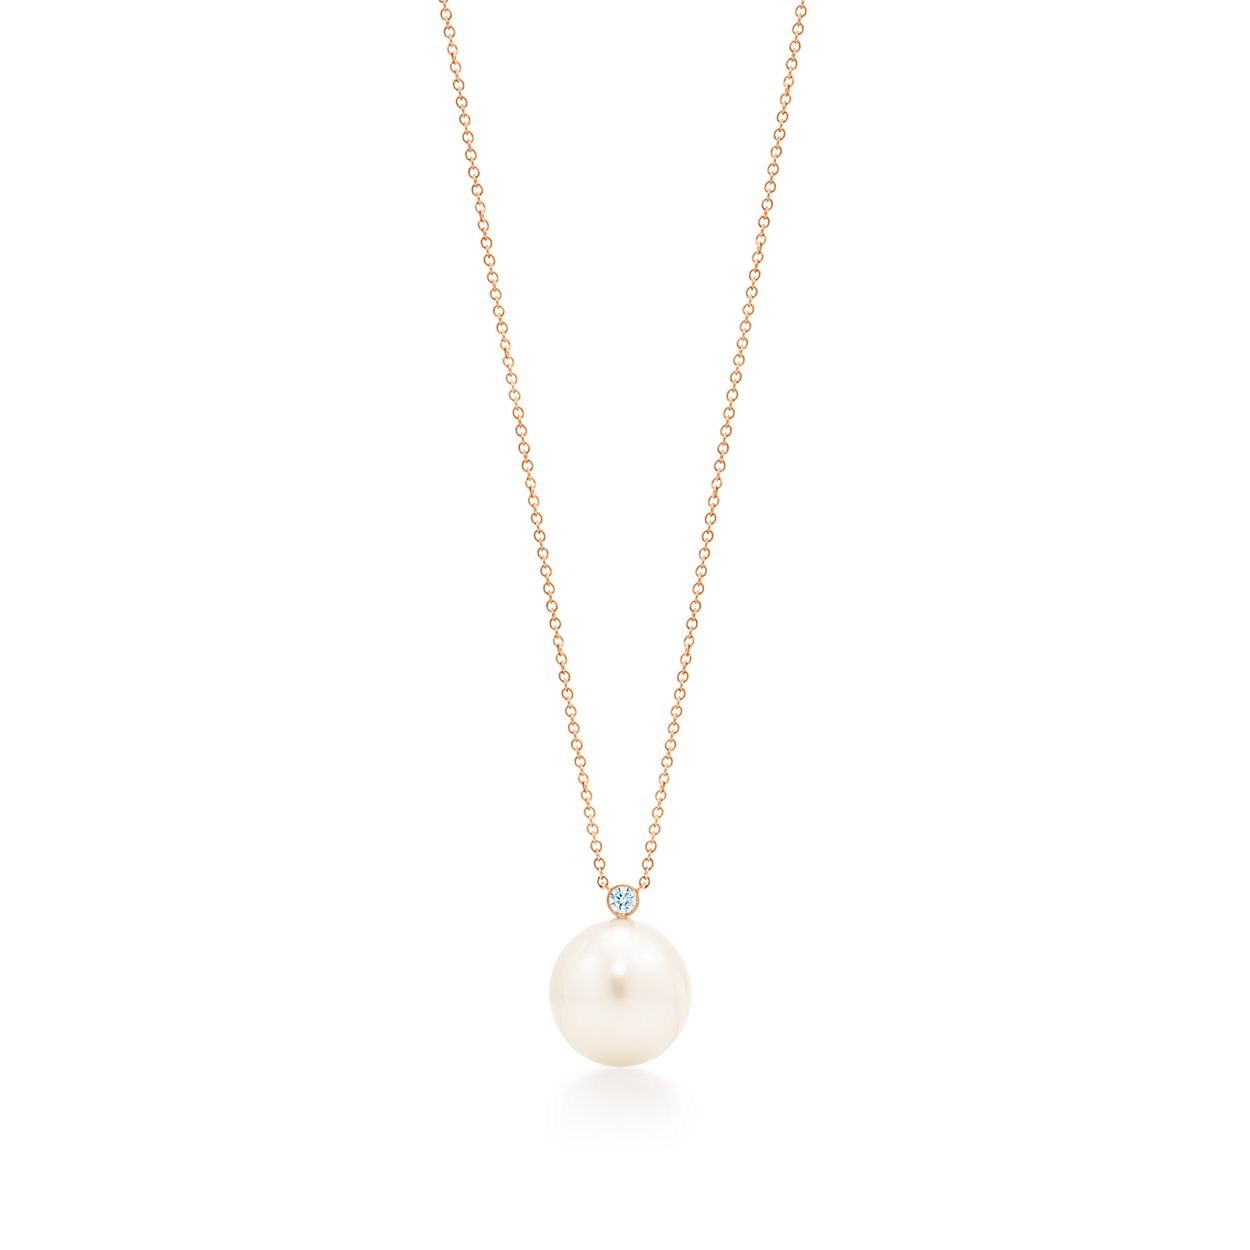 Pendant in 18k rose gold with south sea cultured pearls and tiffany south sea noblepearl pendant aloadofball Image collections